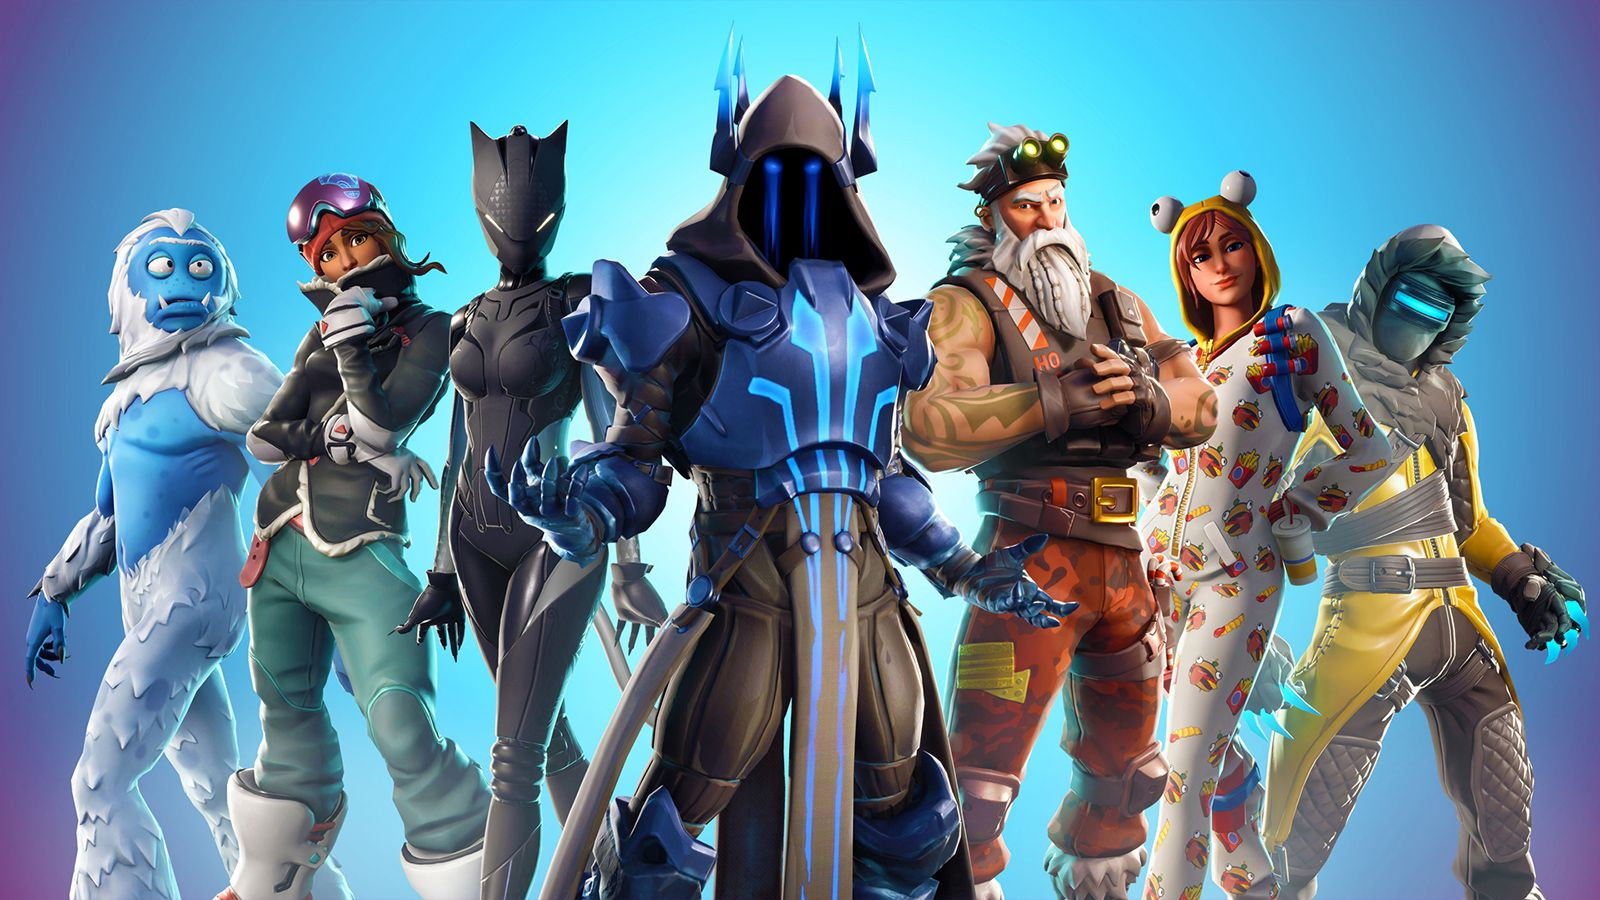 When does Fortnite season 7 end and season 8 start?